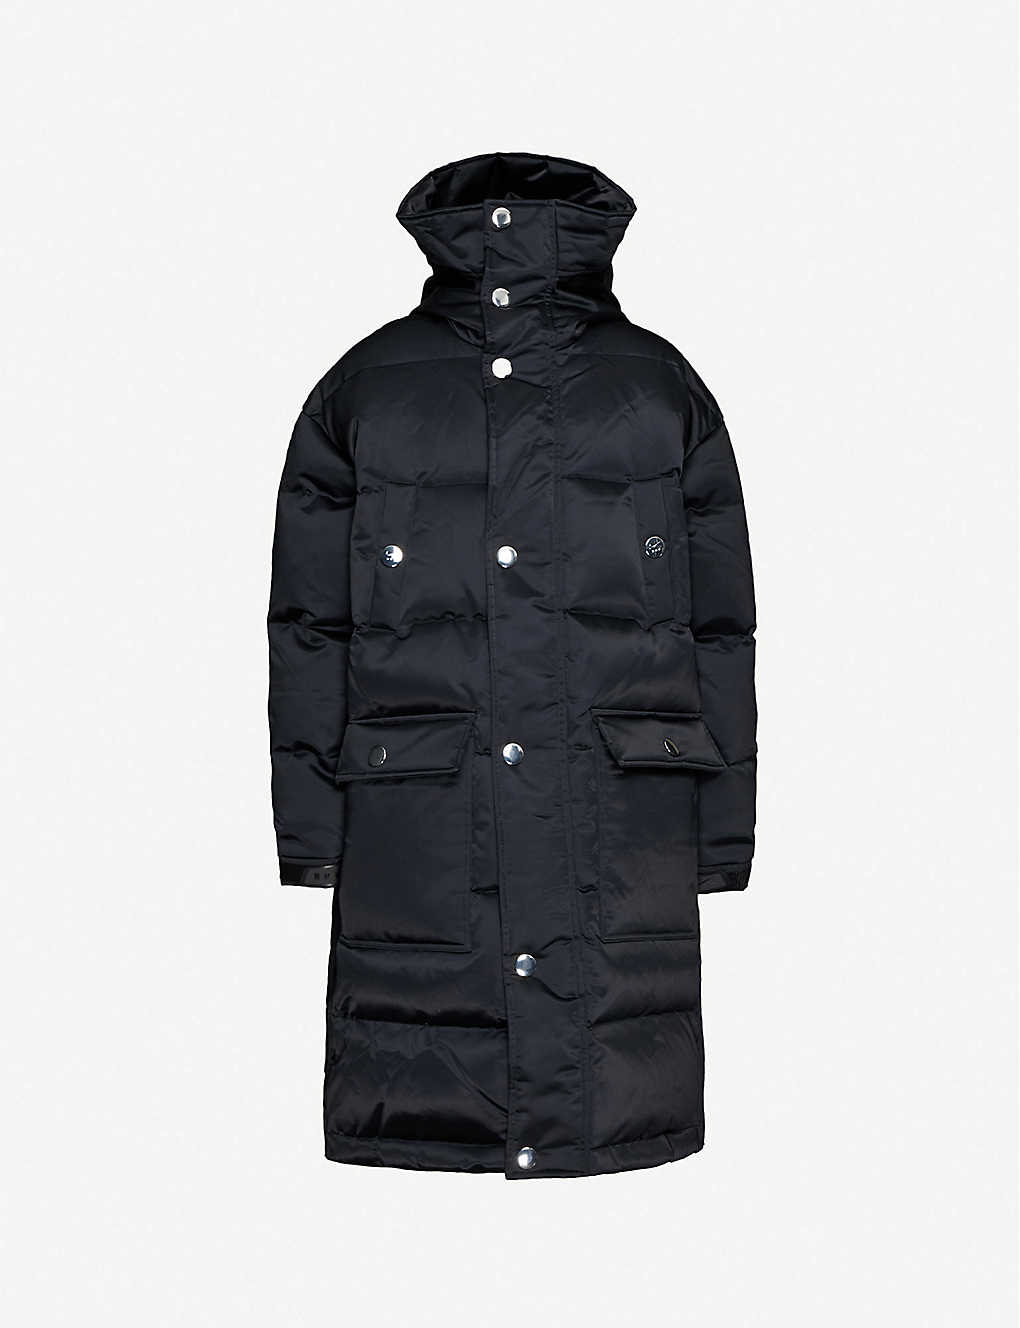 NIKE: Nike x Matthew M Williams padded shell-down coat